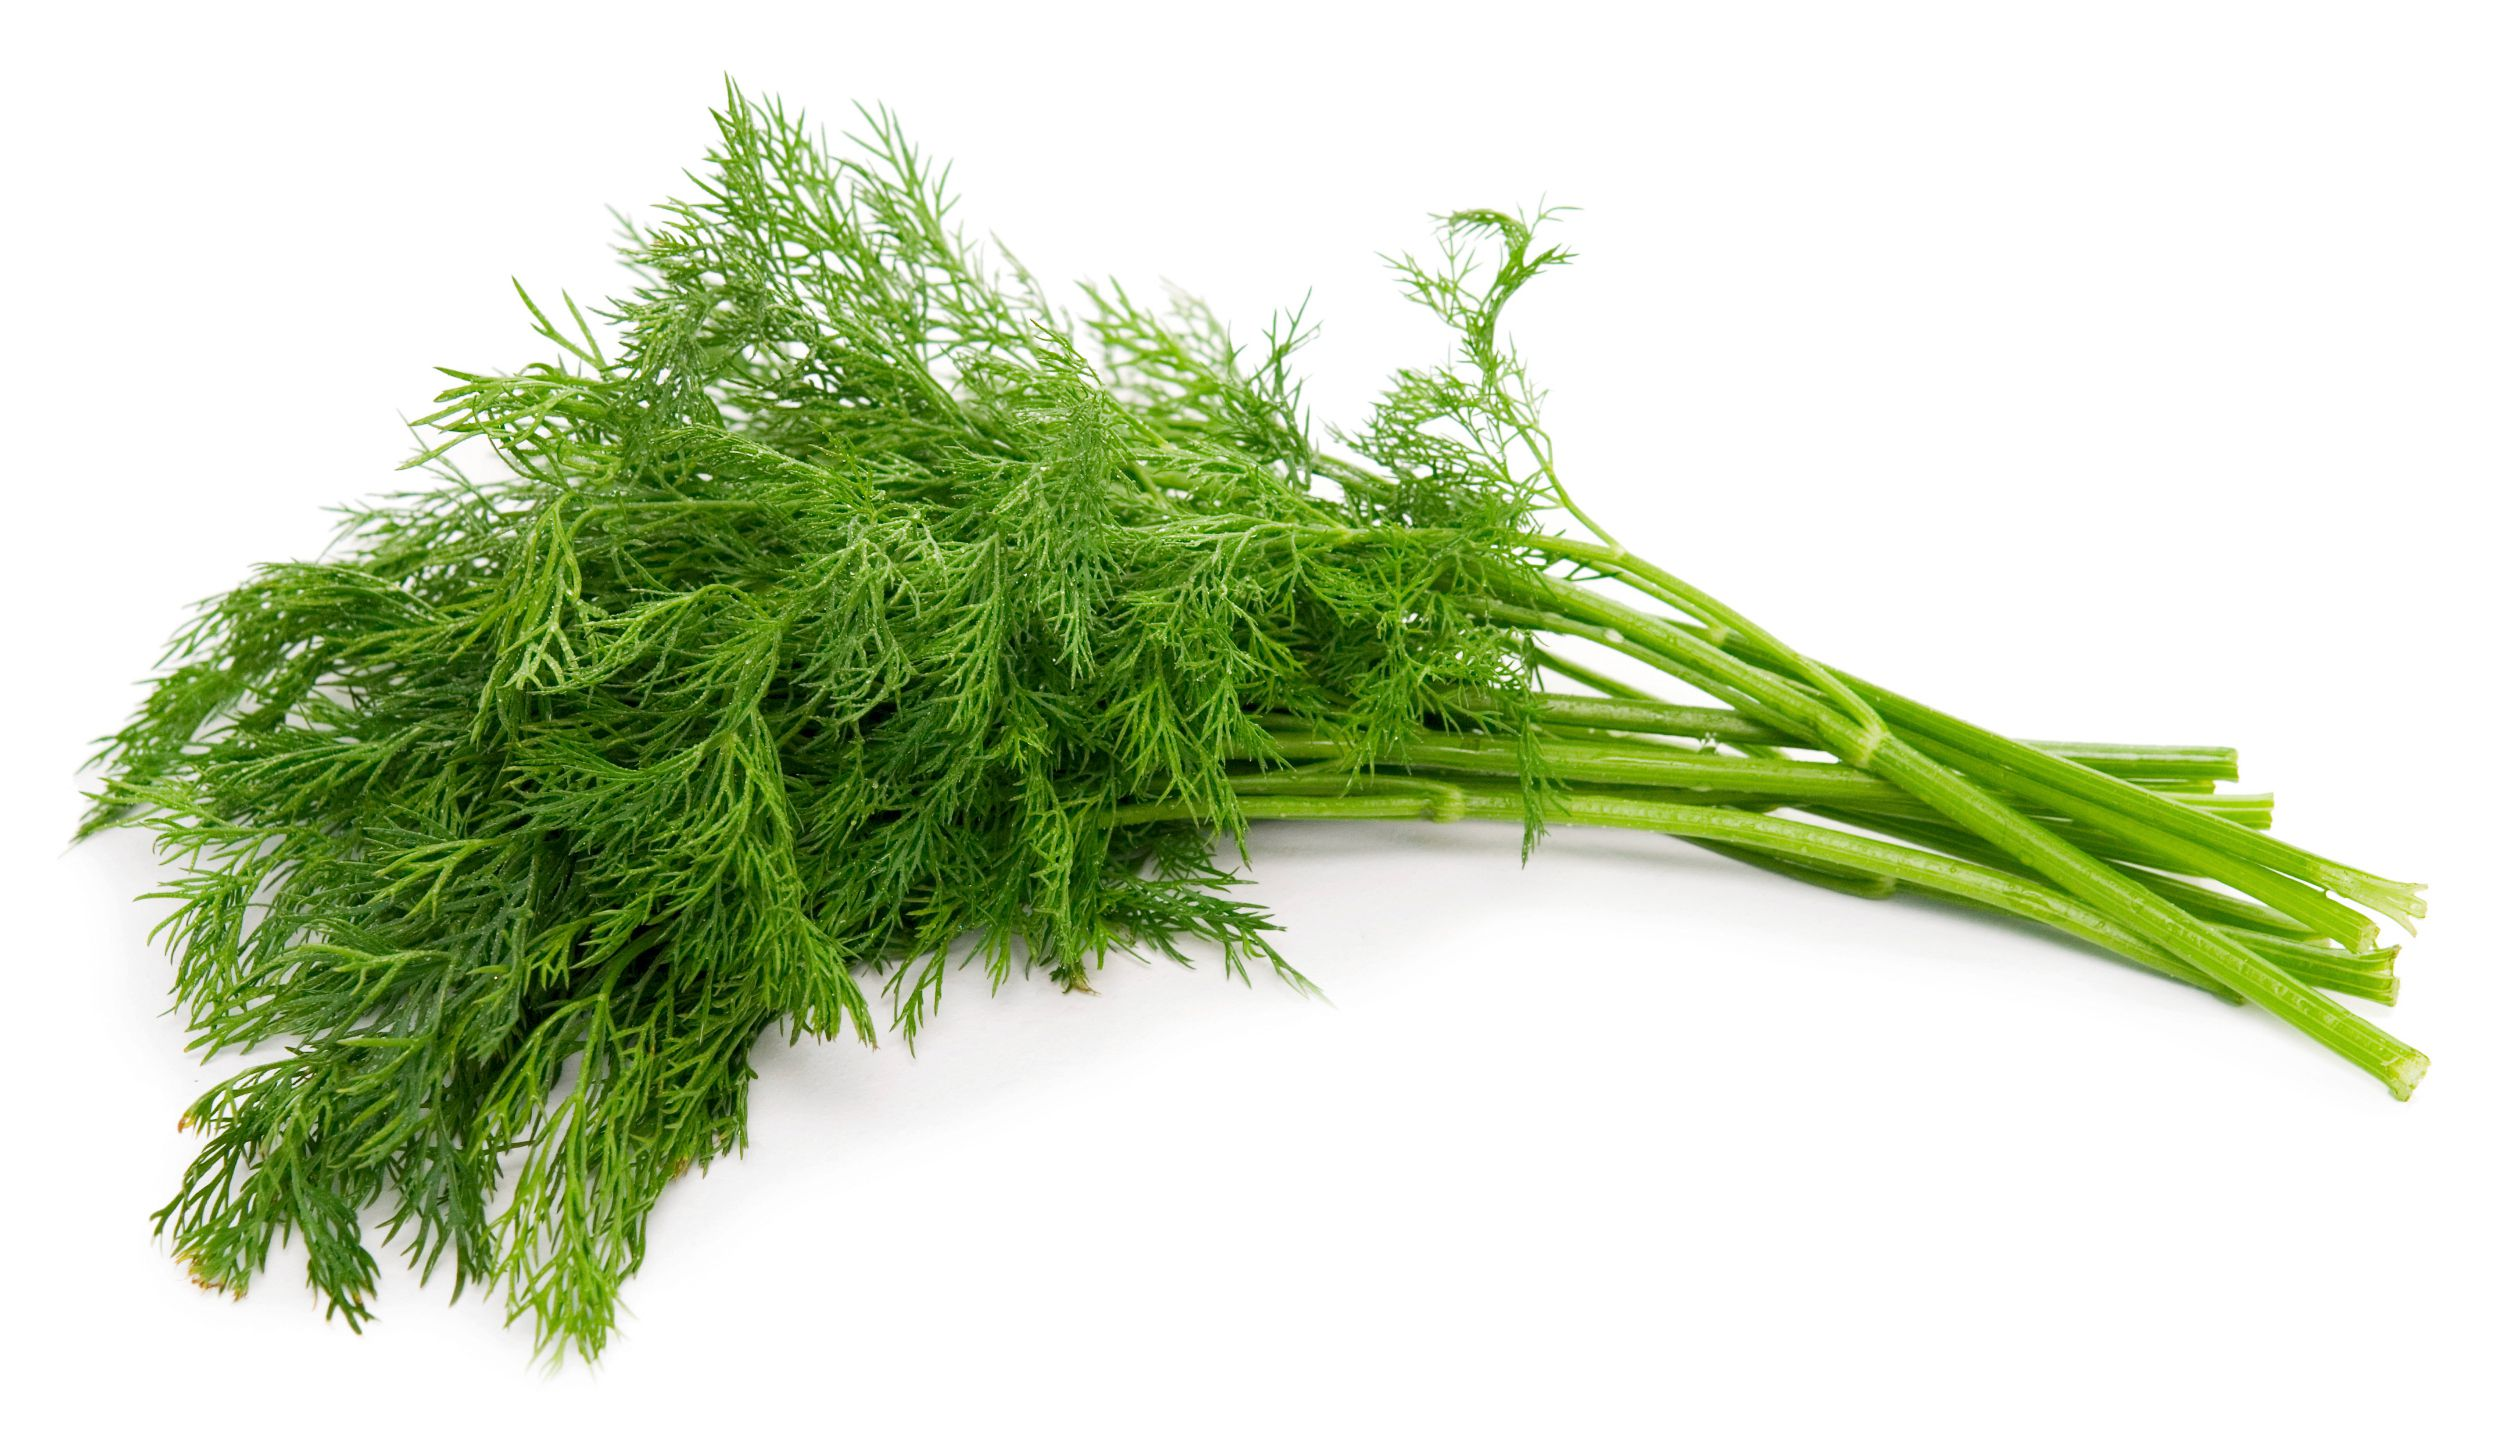 What Kind Of Herb Is Dill And How Is It Used